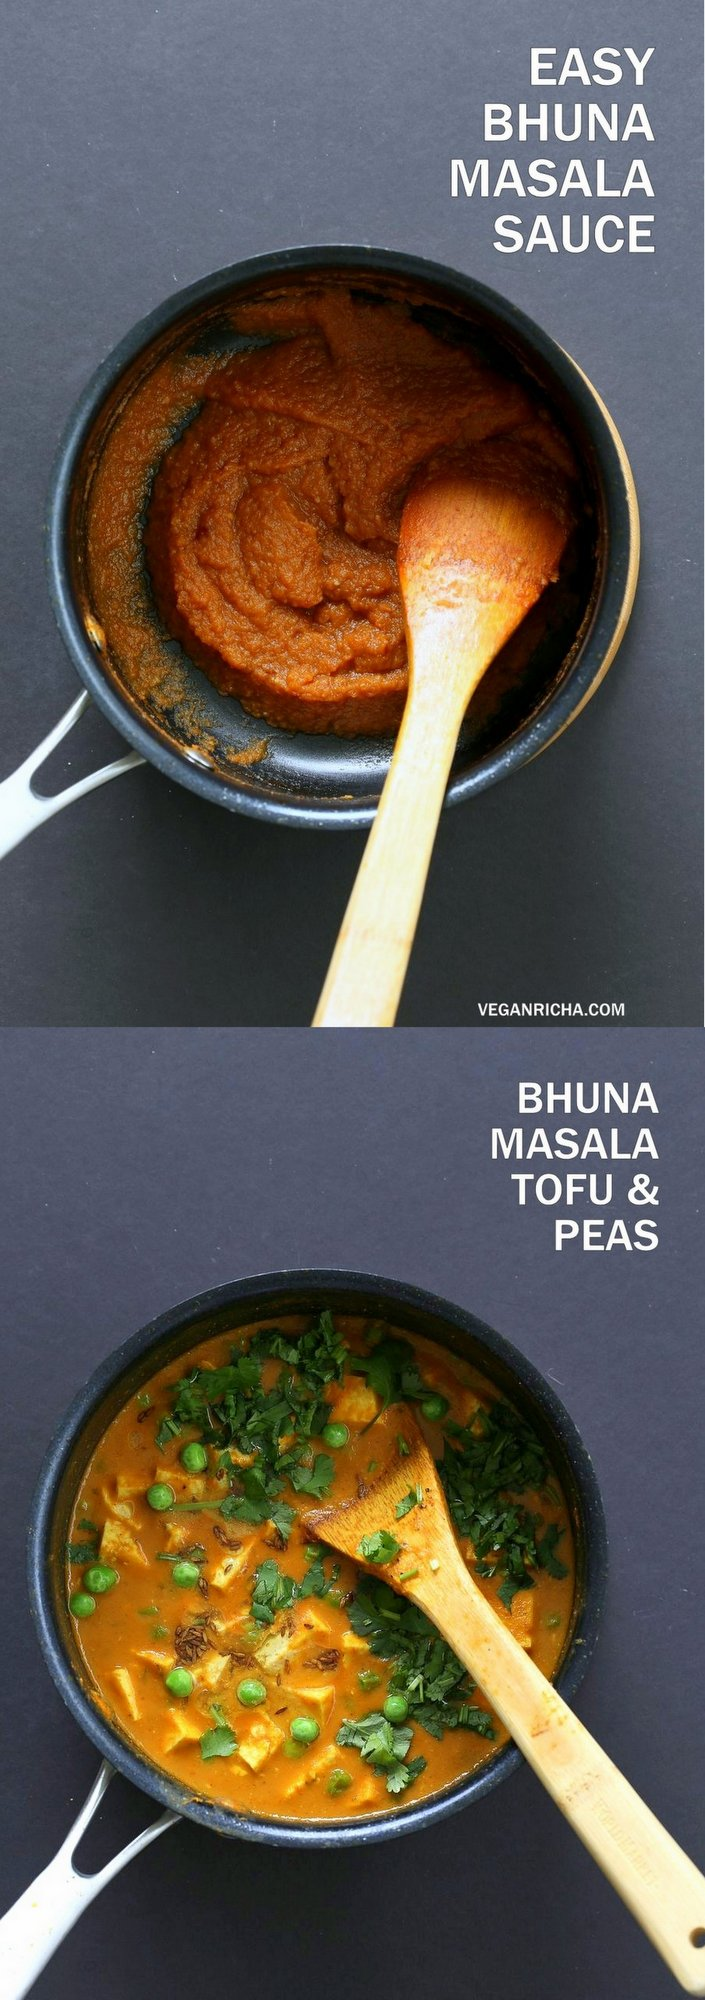 Easy Bhuna Masala Sauce for Indian curries. 1 Pot 30 Minute Masala Sauce. Bhuna means roasted. Use this roasted masala simmer sauce for quick curries. Add non dairy milk or cashew cream or yogurt. #Vegan #Glutenfree #Recipe #VeganRicha | VeganRicha.com